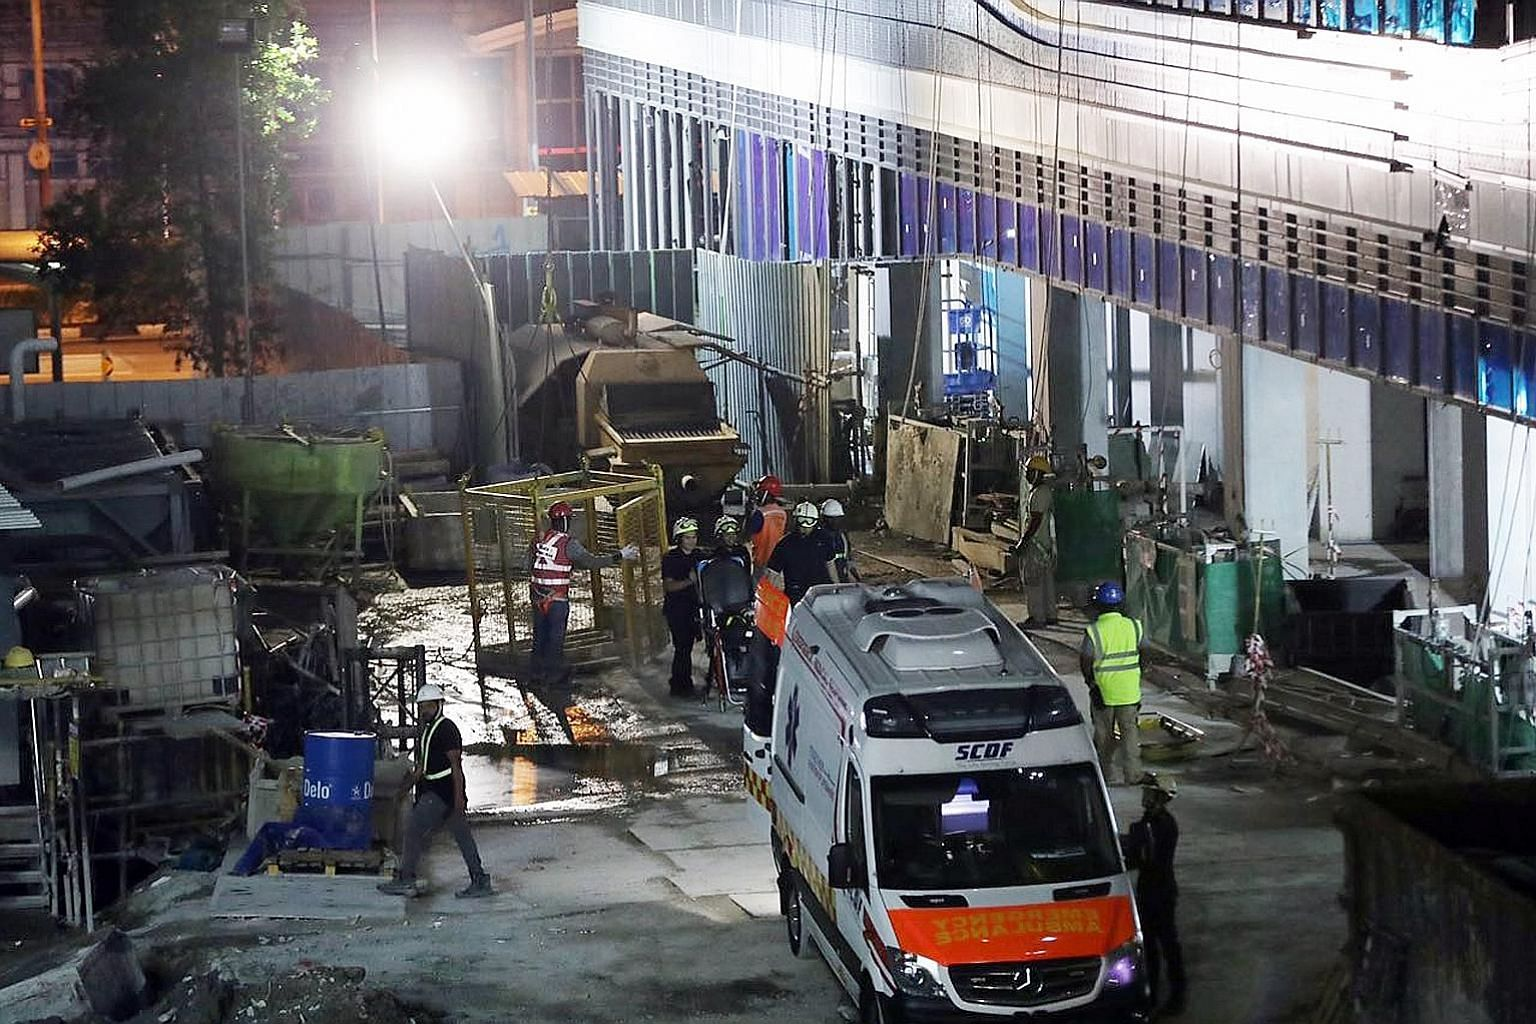 The scene of an industrial accident at a construction site in Minto Road in February last year. The new rules, which require stakeholders to be consulted on the draft learning report, formalise the learning report framework and incorporate feedback f